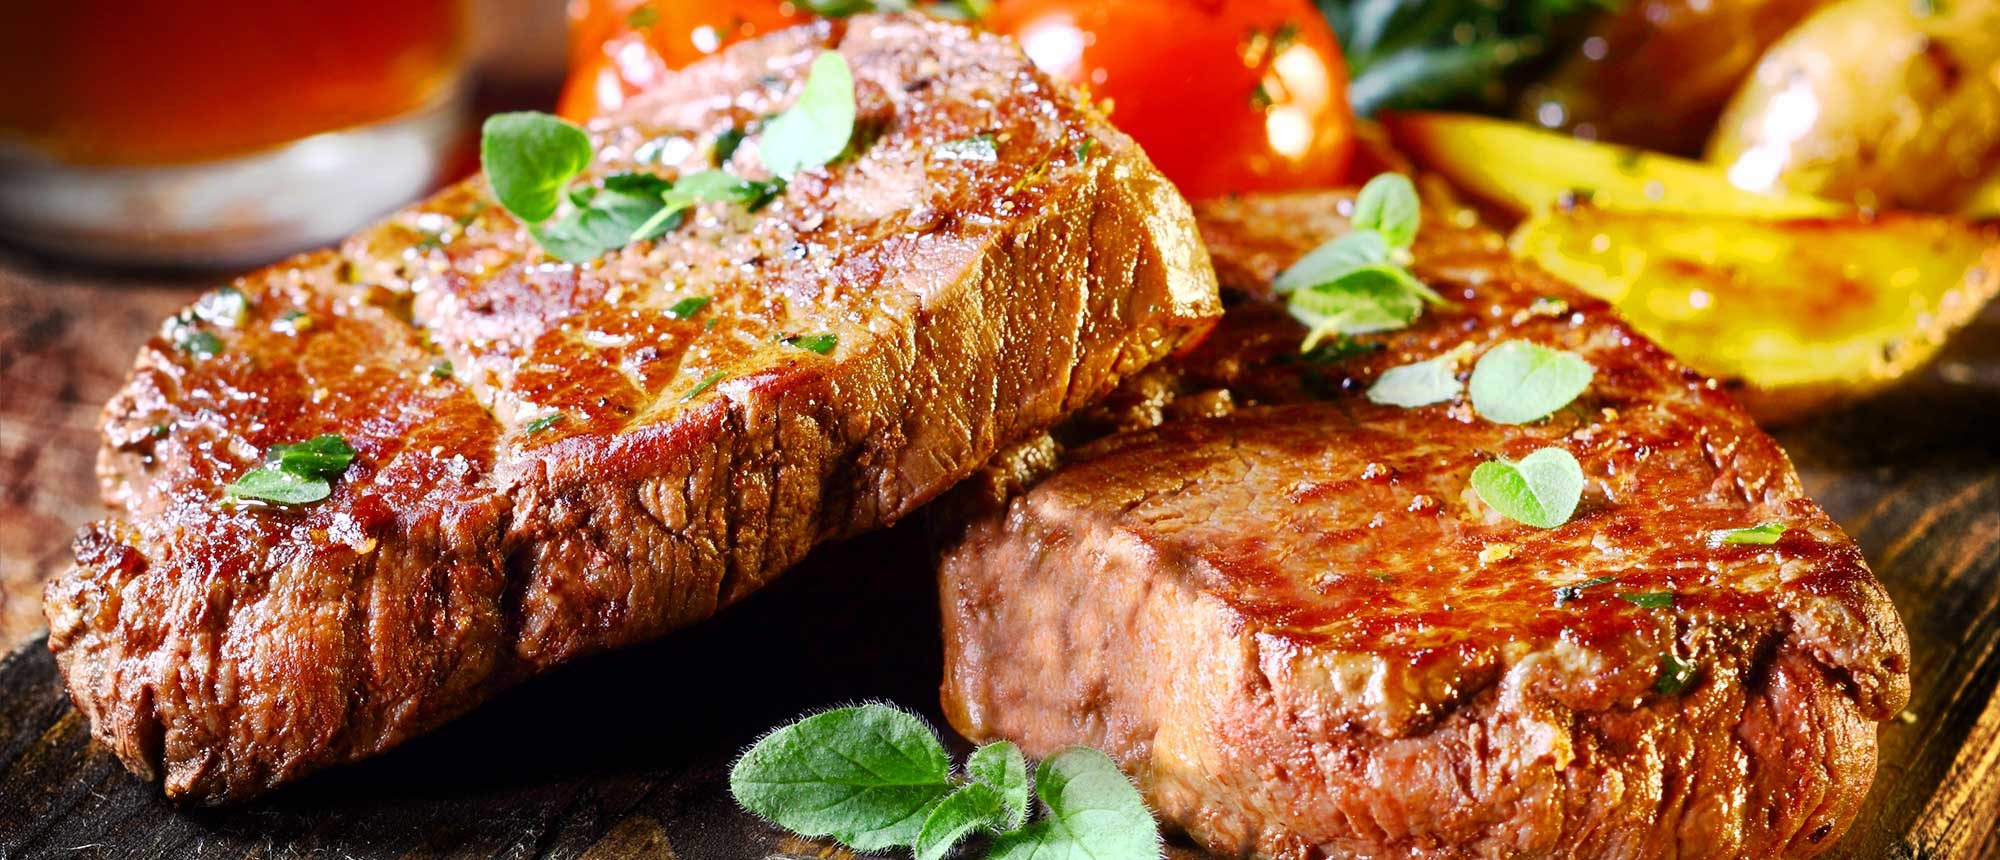 Succulent thick juicy portions of grilled fillet steak served with tomatoes and roast vegetables on an old wooden board.